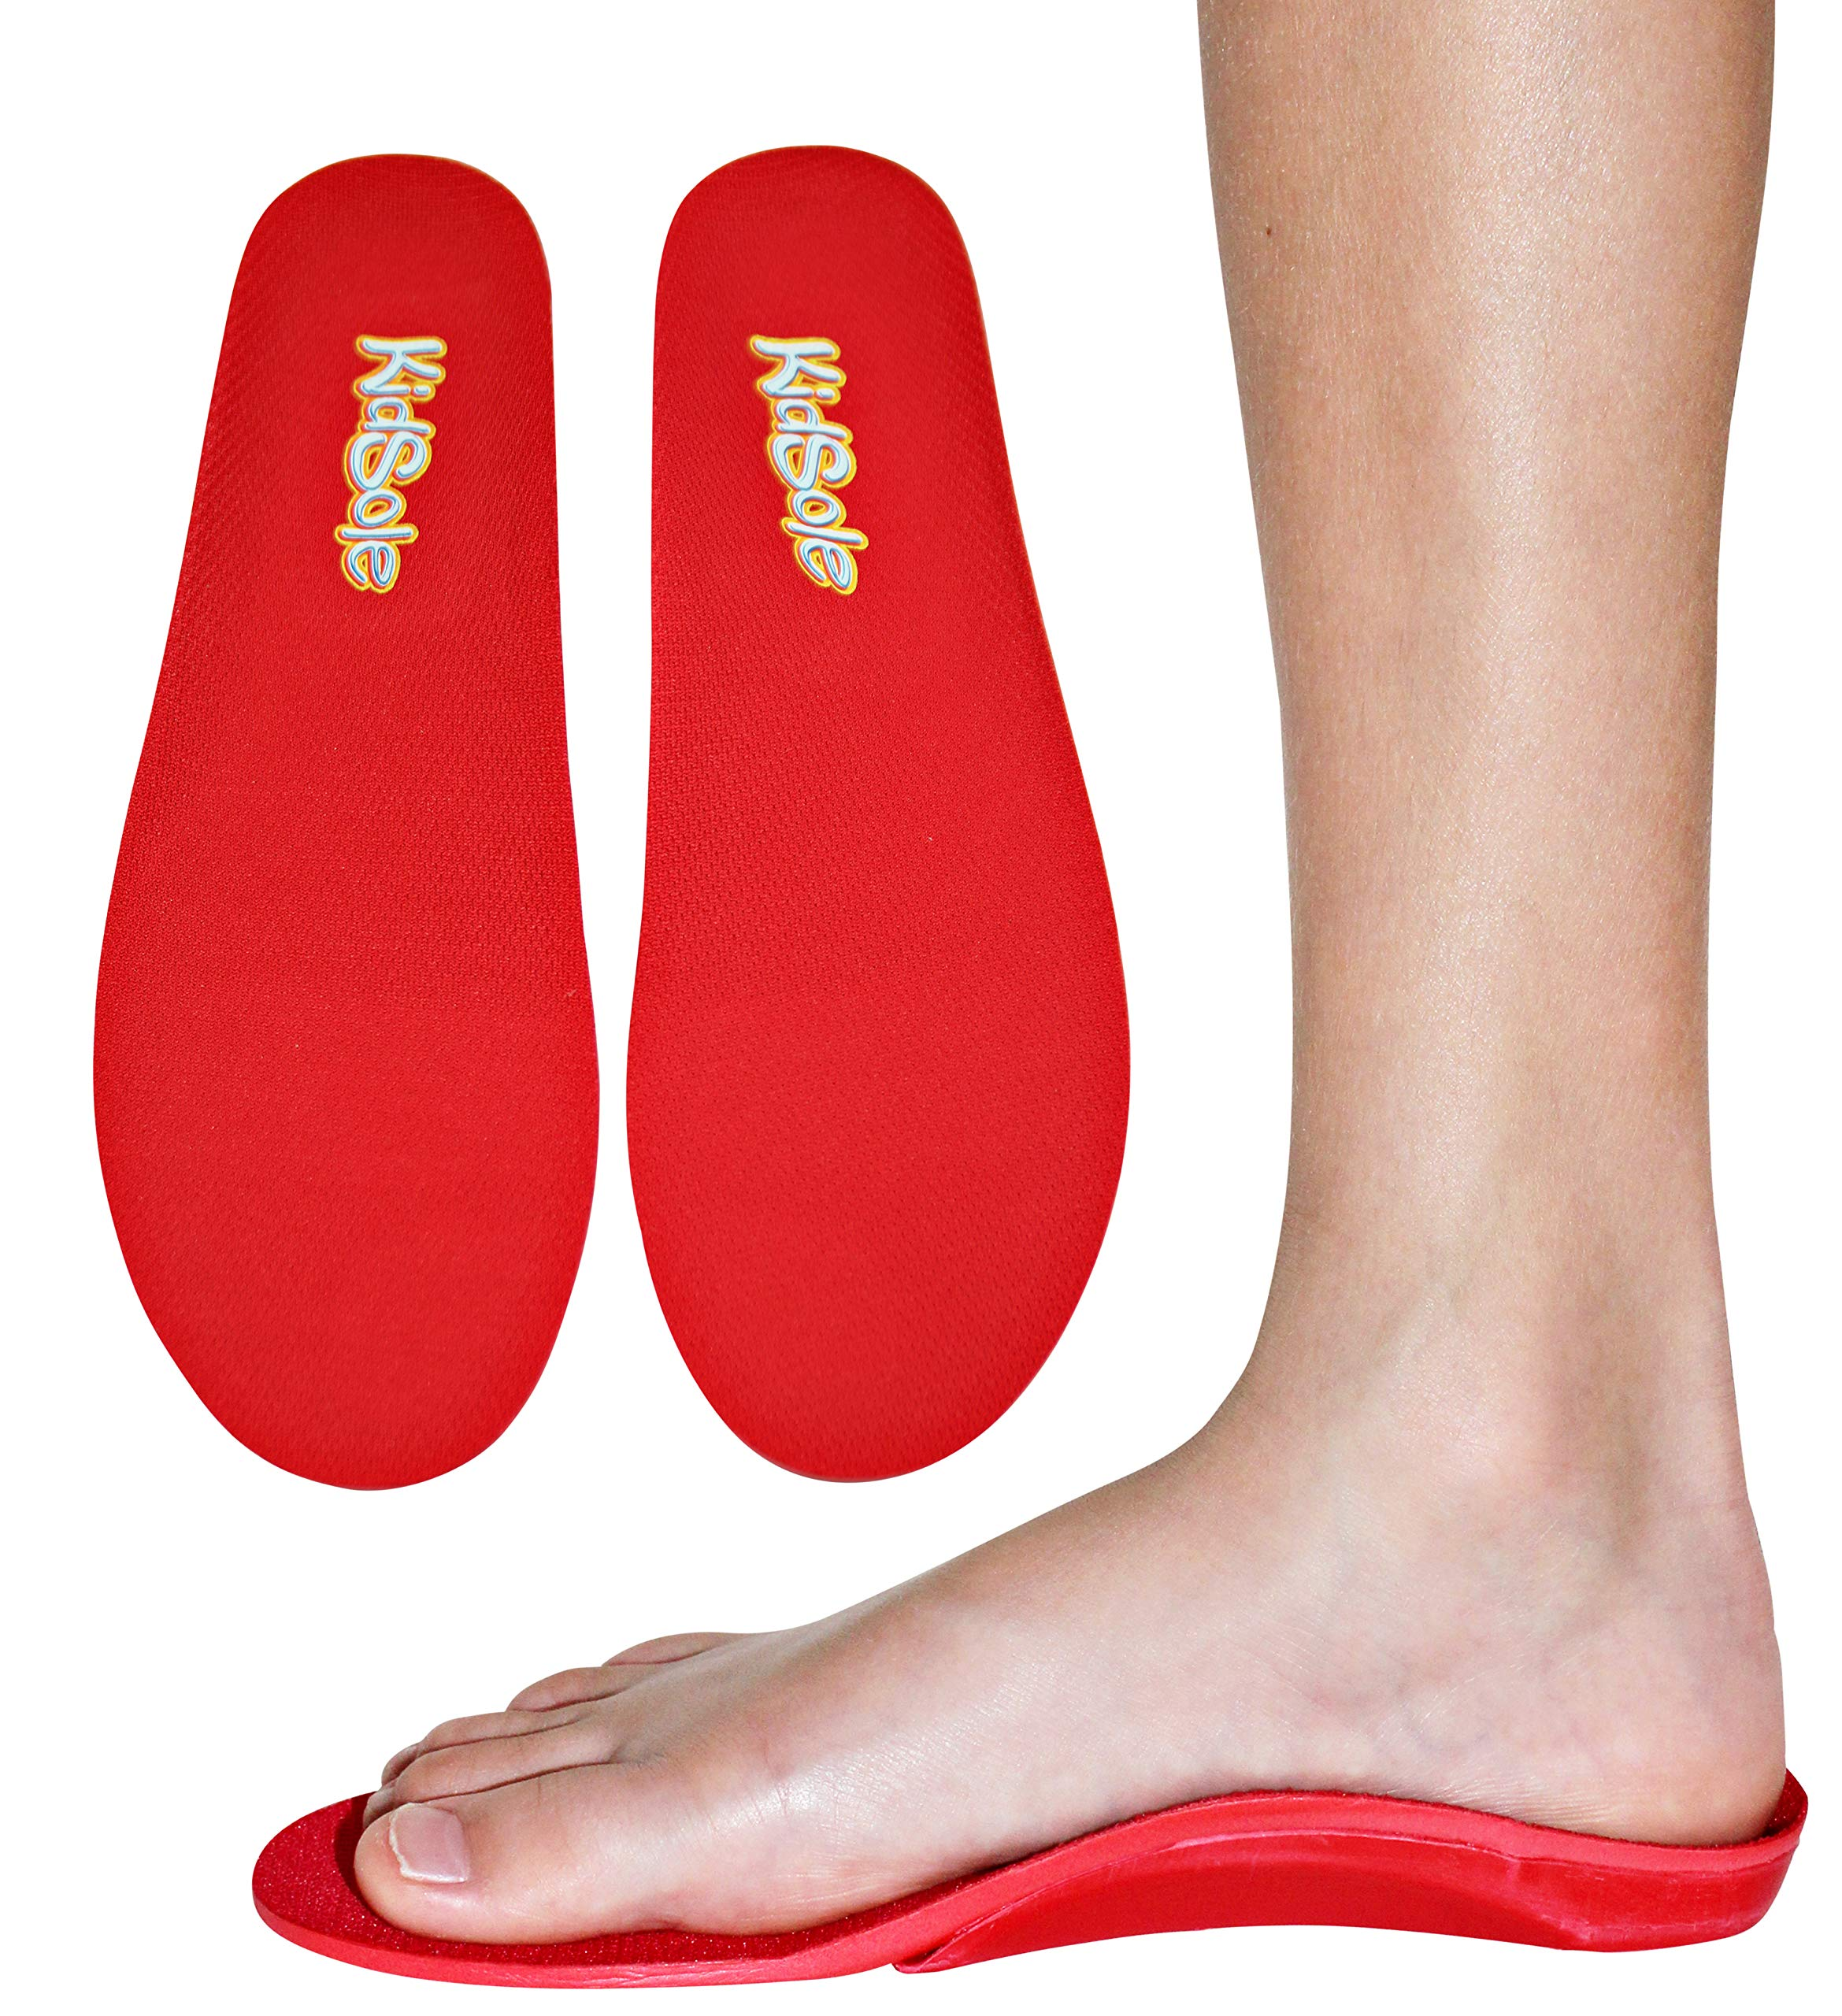 Red Orthotic Sports Insole by KidSole -- Lightweight Soft & Sturdy Orthotic Technology For Active Children With Flat Feet and Other Arch Support Problems (US Kids Sizes 4-6 (24 CM)) by KidSole